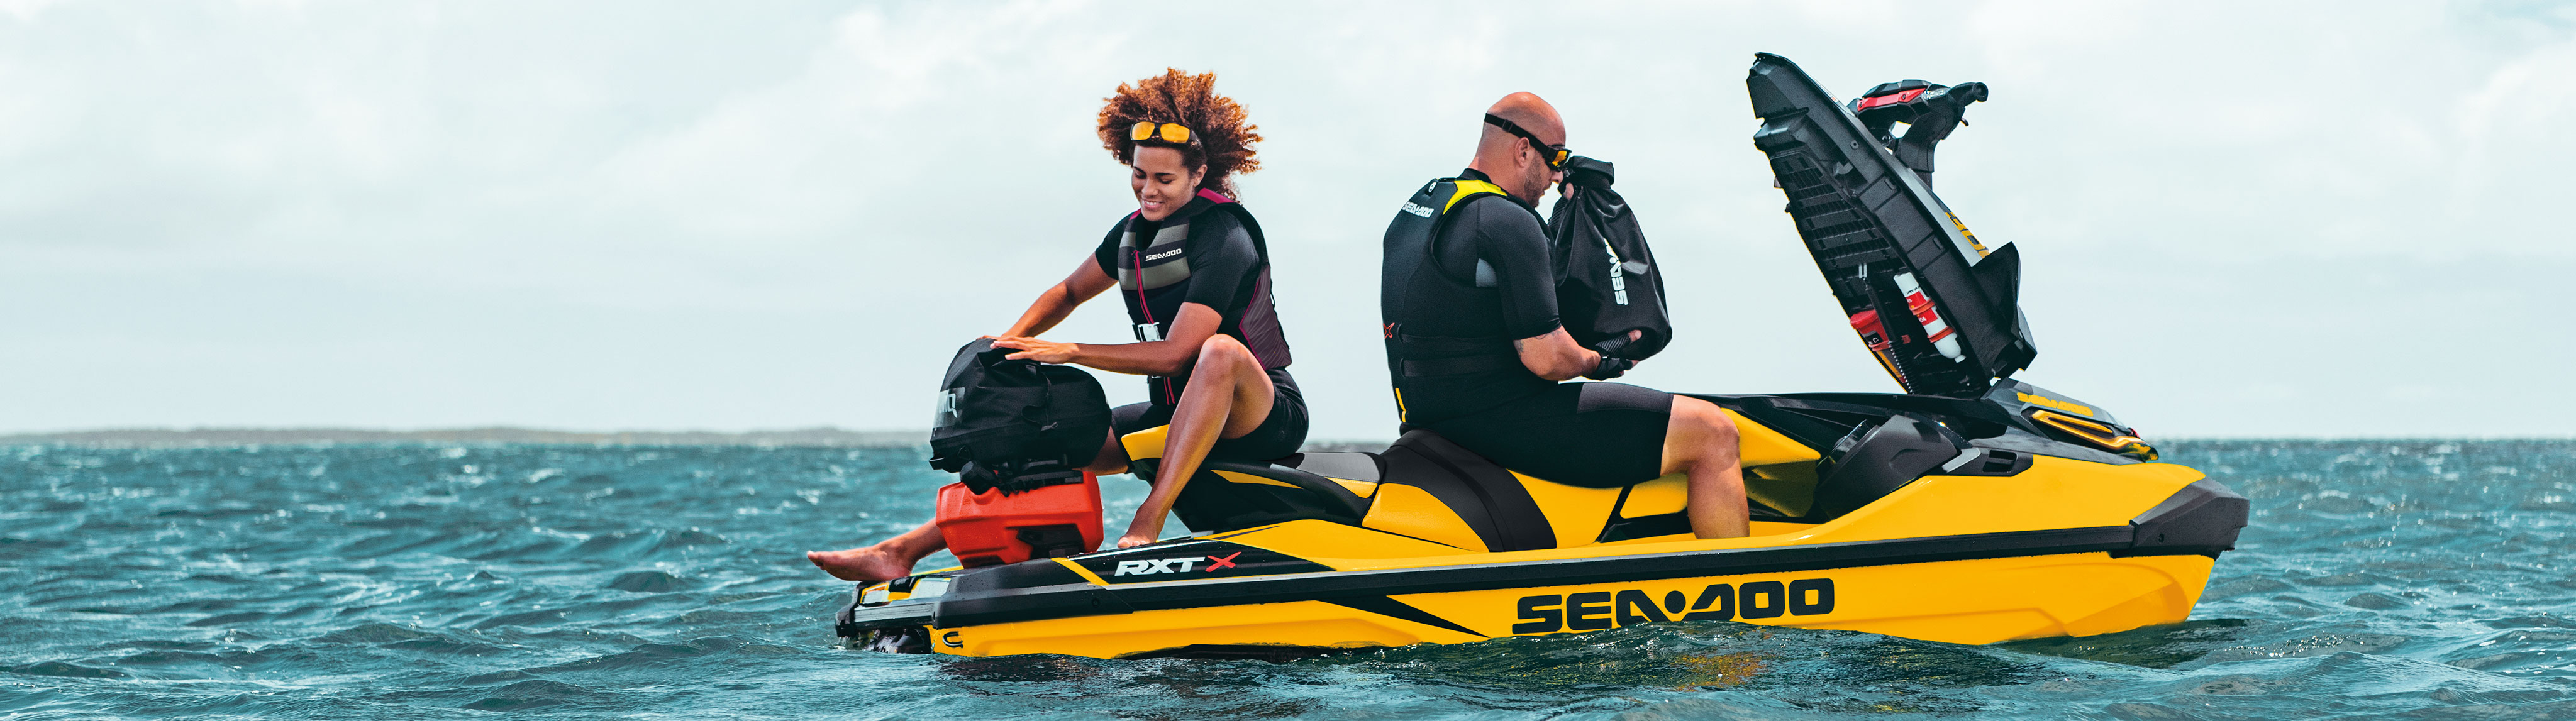 Couple on a Sea-Doo RXP-X with LnQ Accessoires